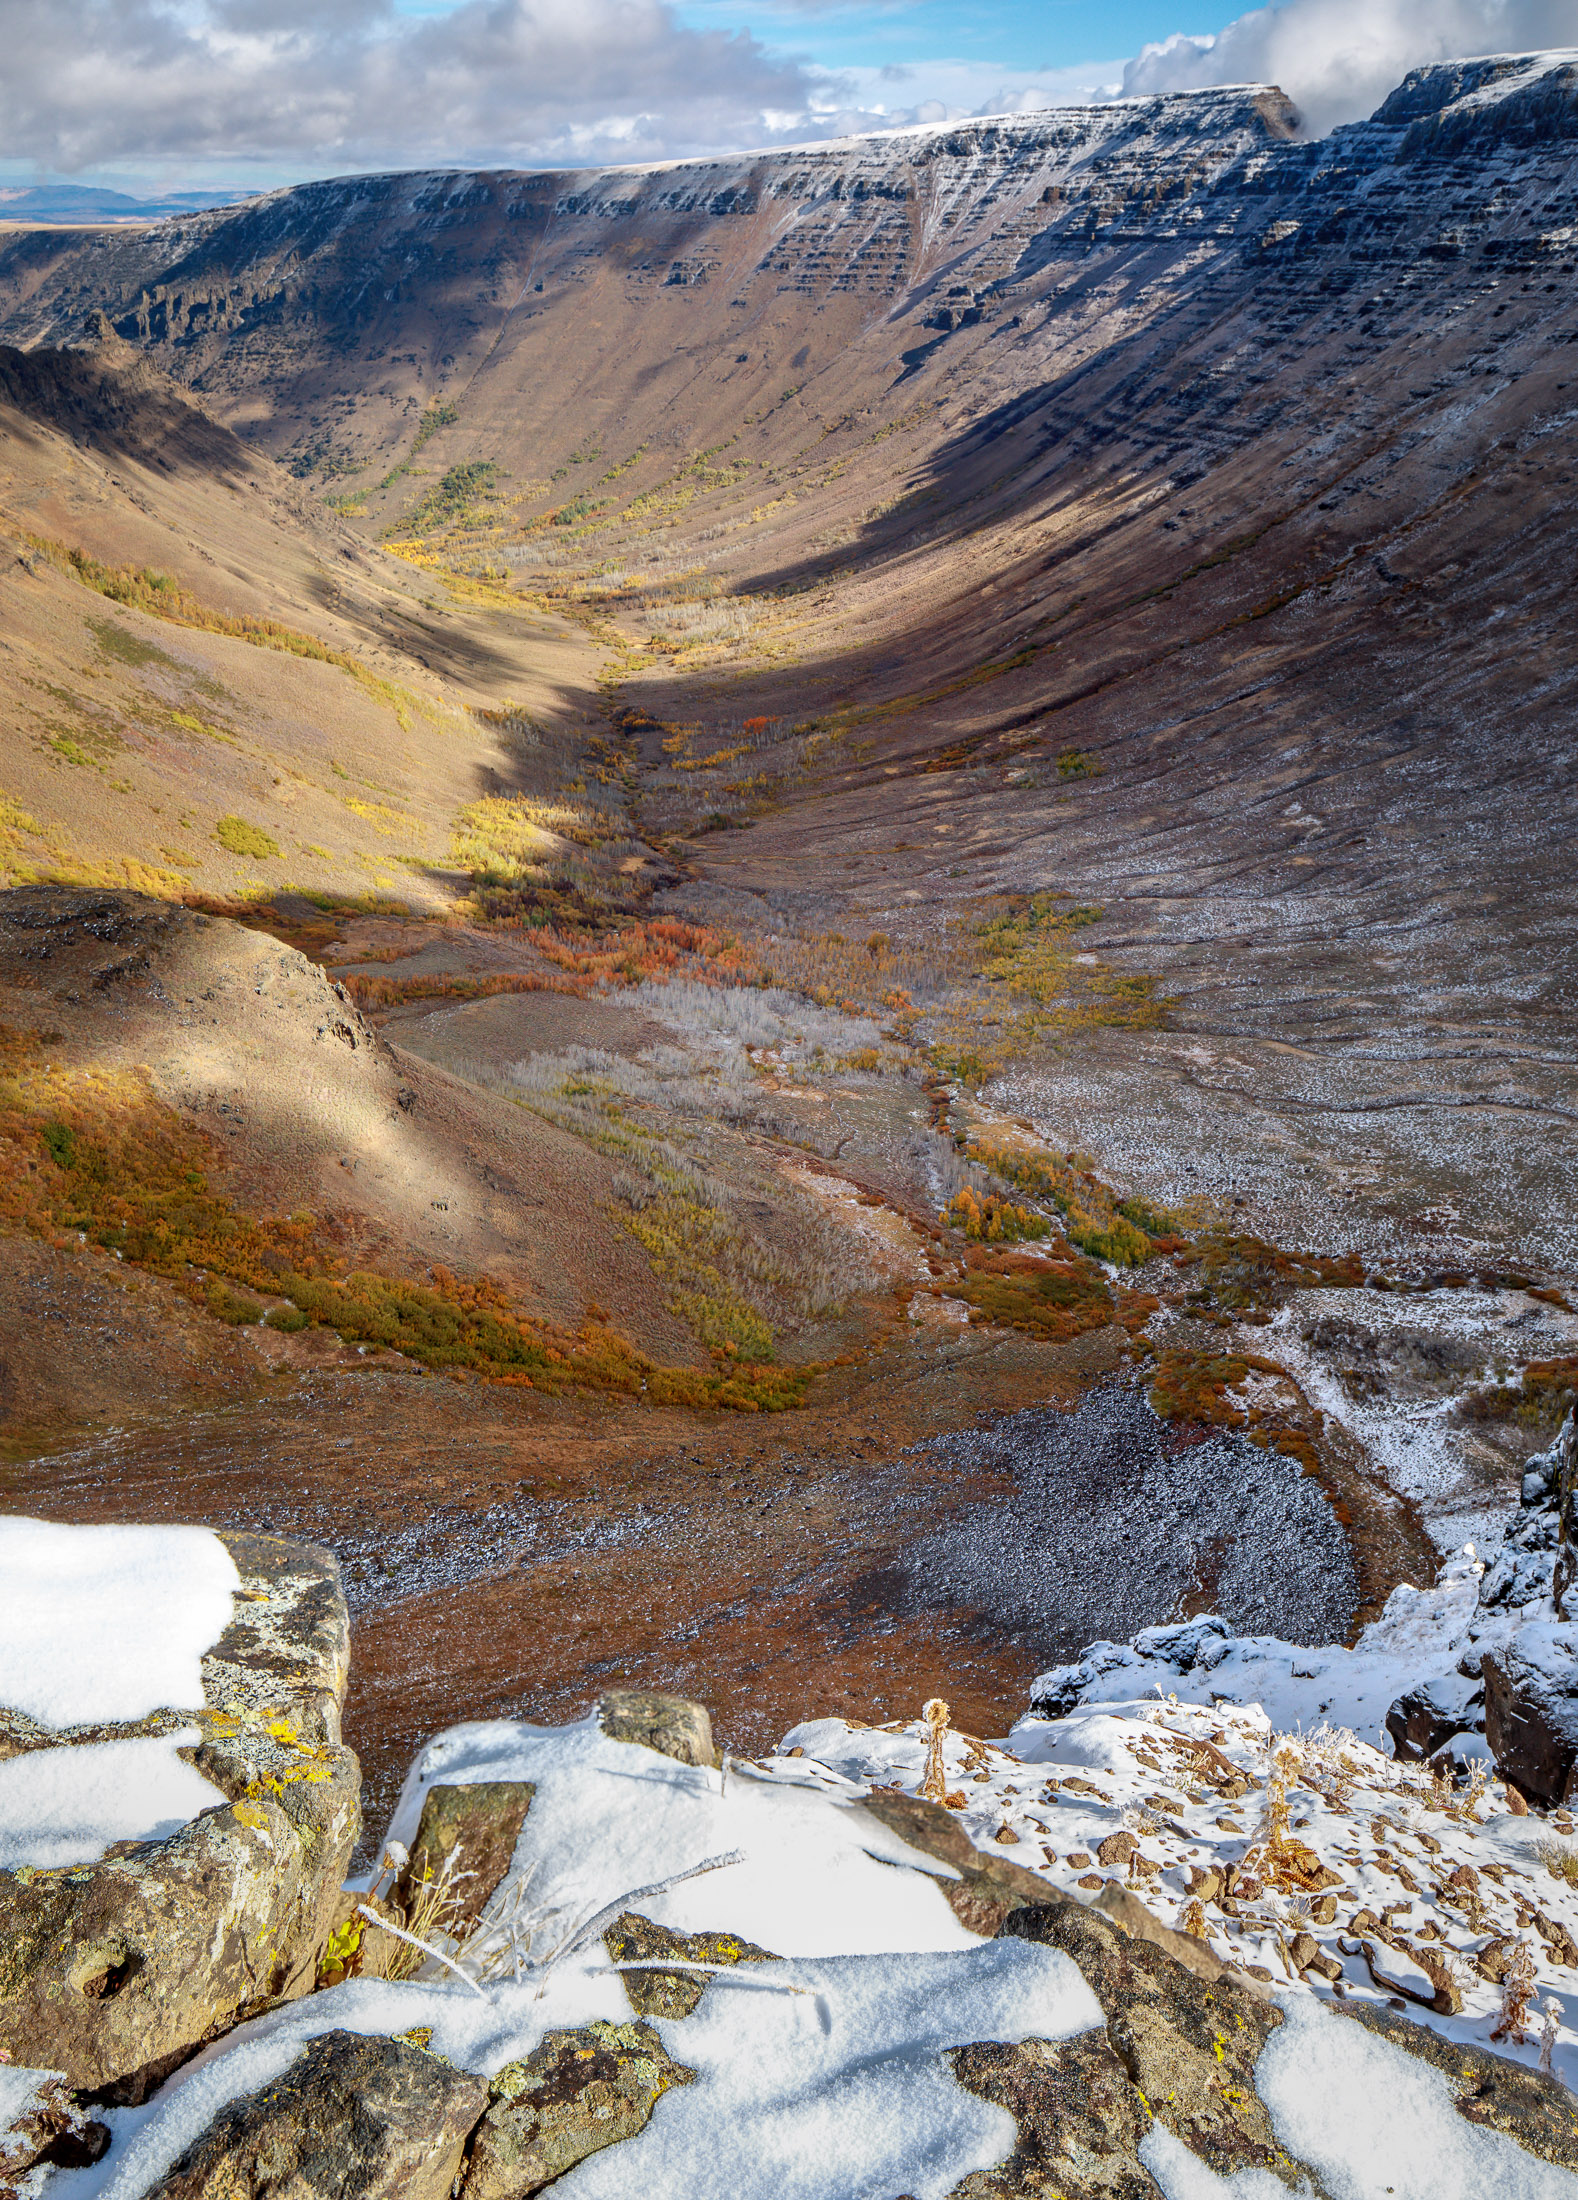 Steens Mountain's Kiger Gorge